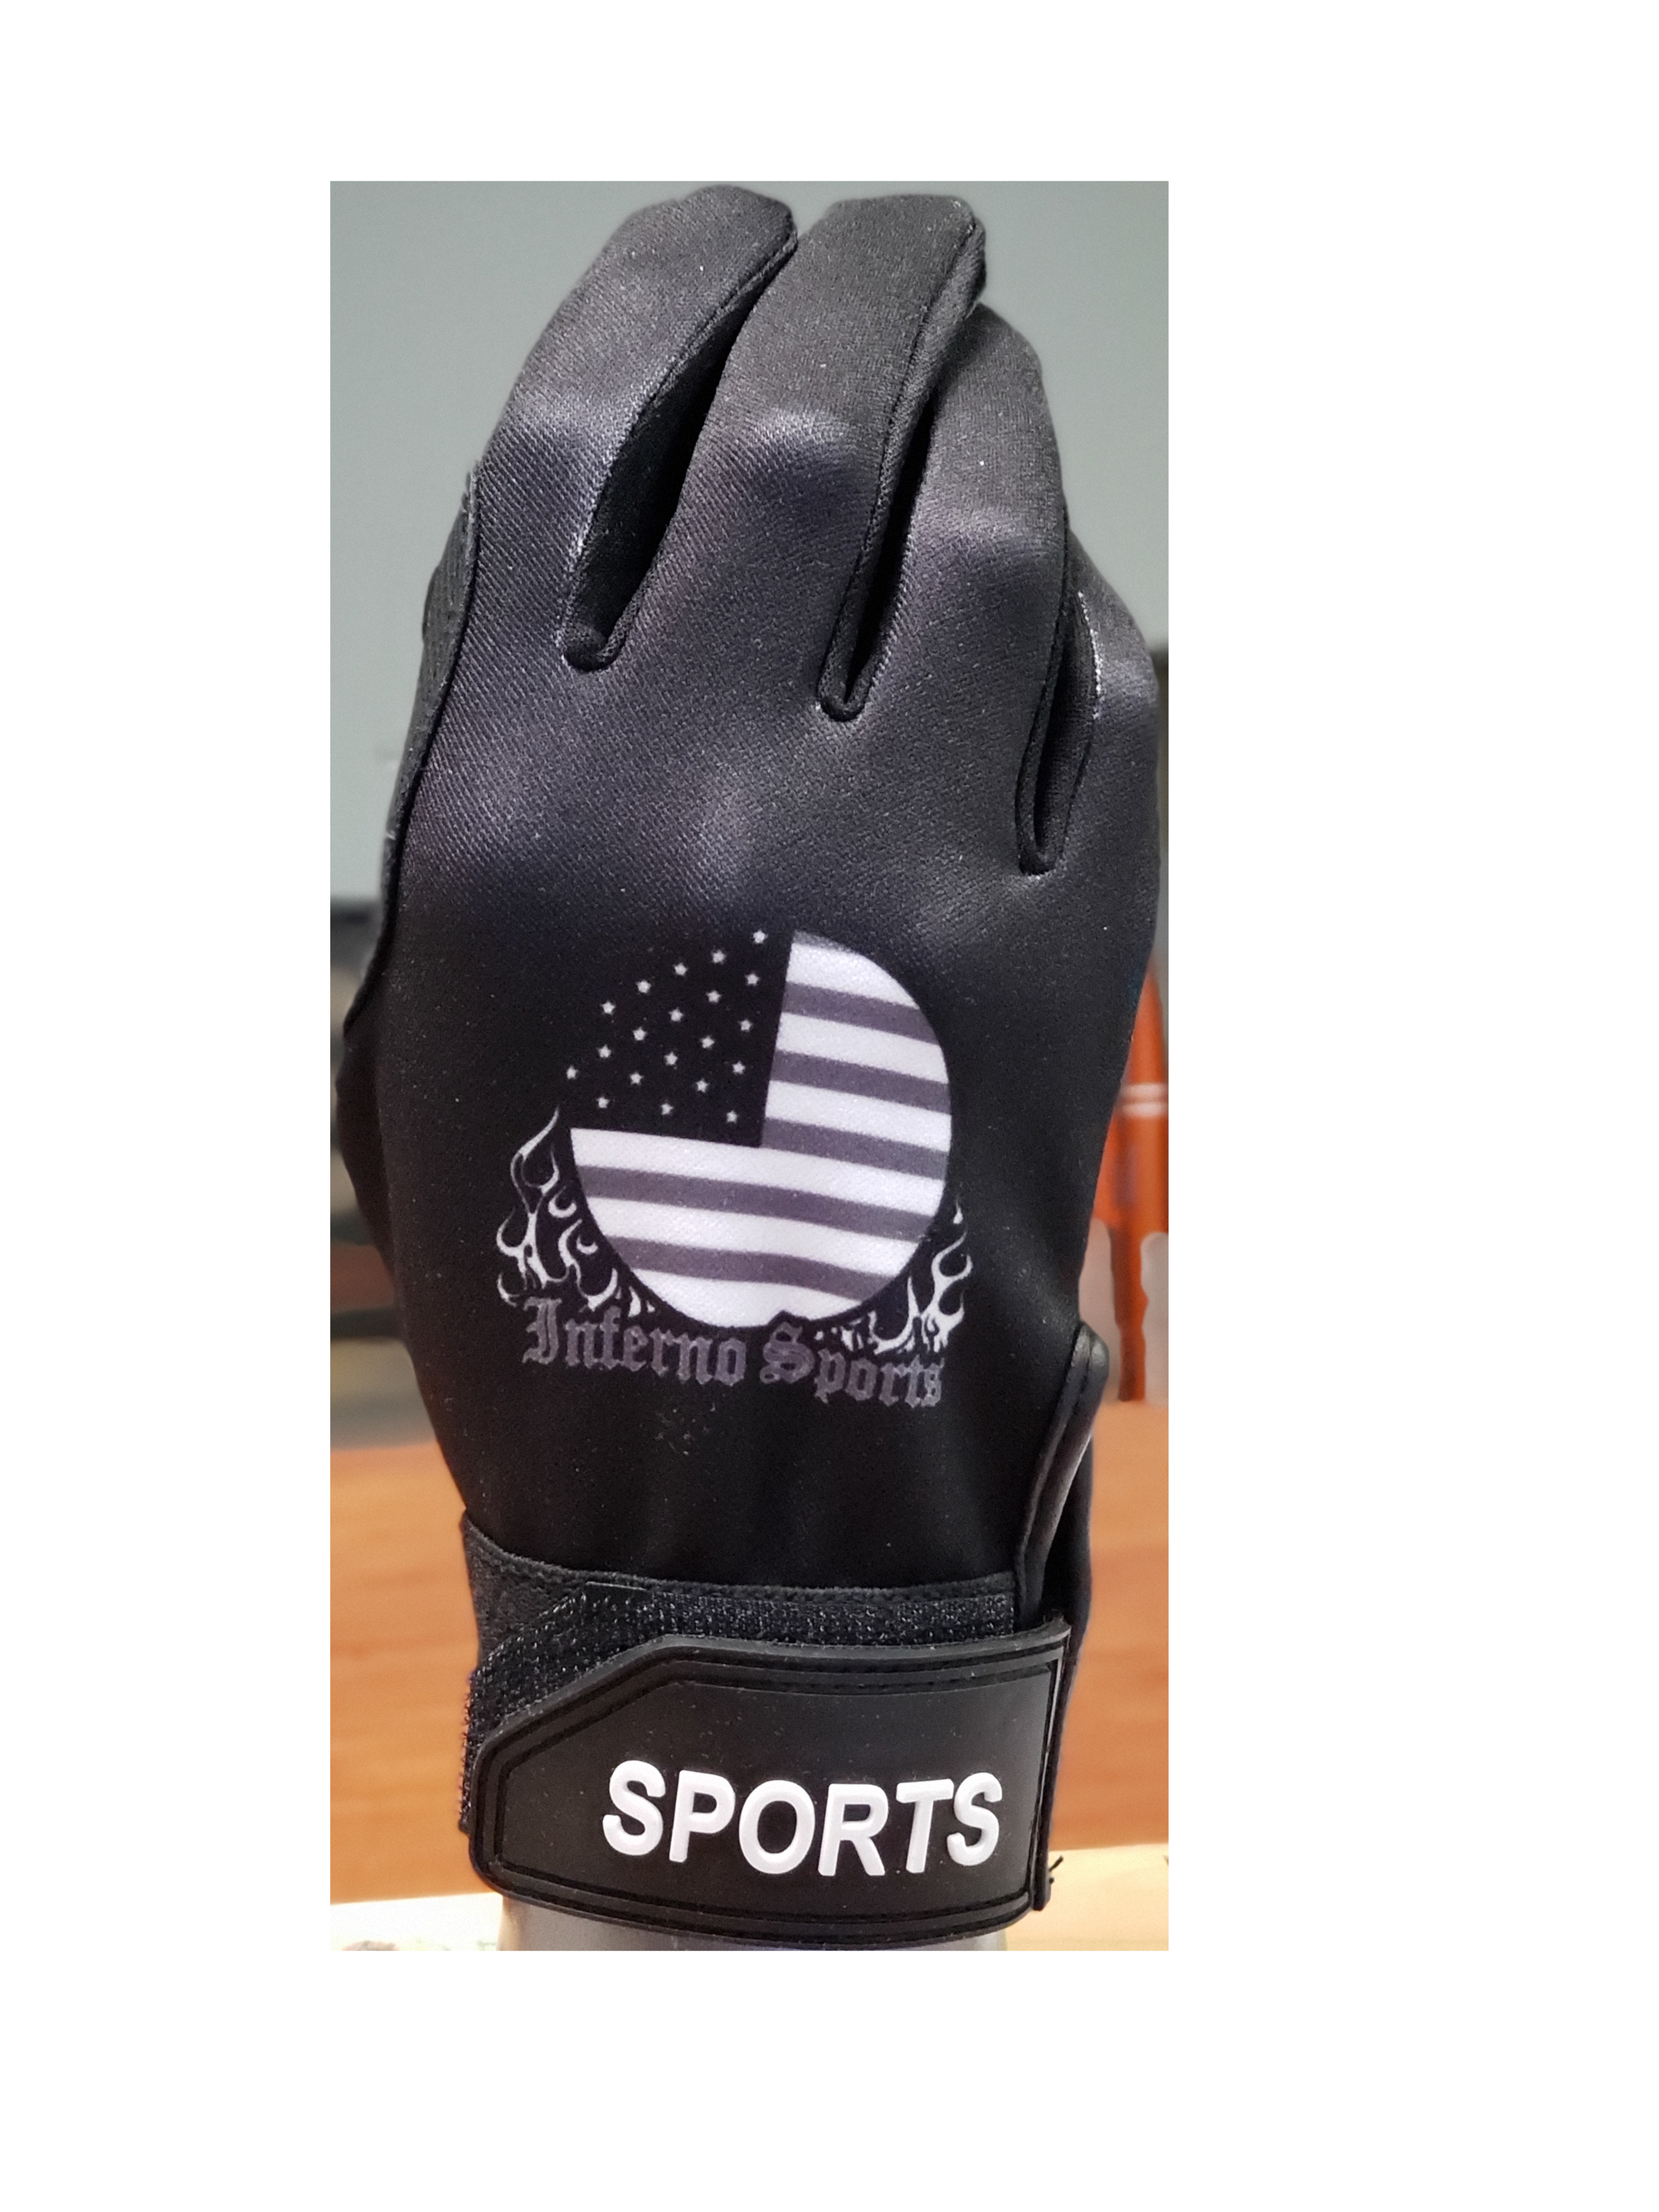 Inferno Sports Game Day Batting Gloves 2.0 - Blackout Flag